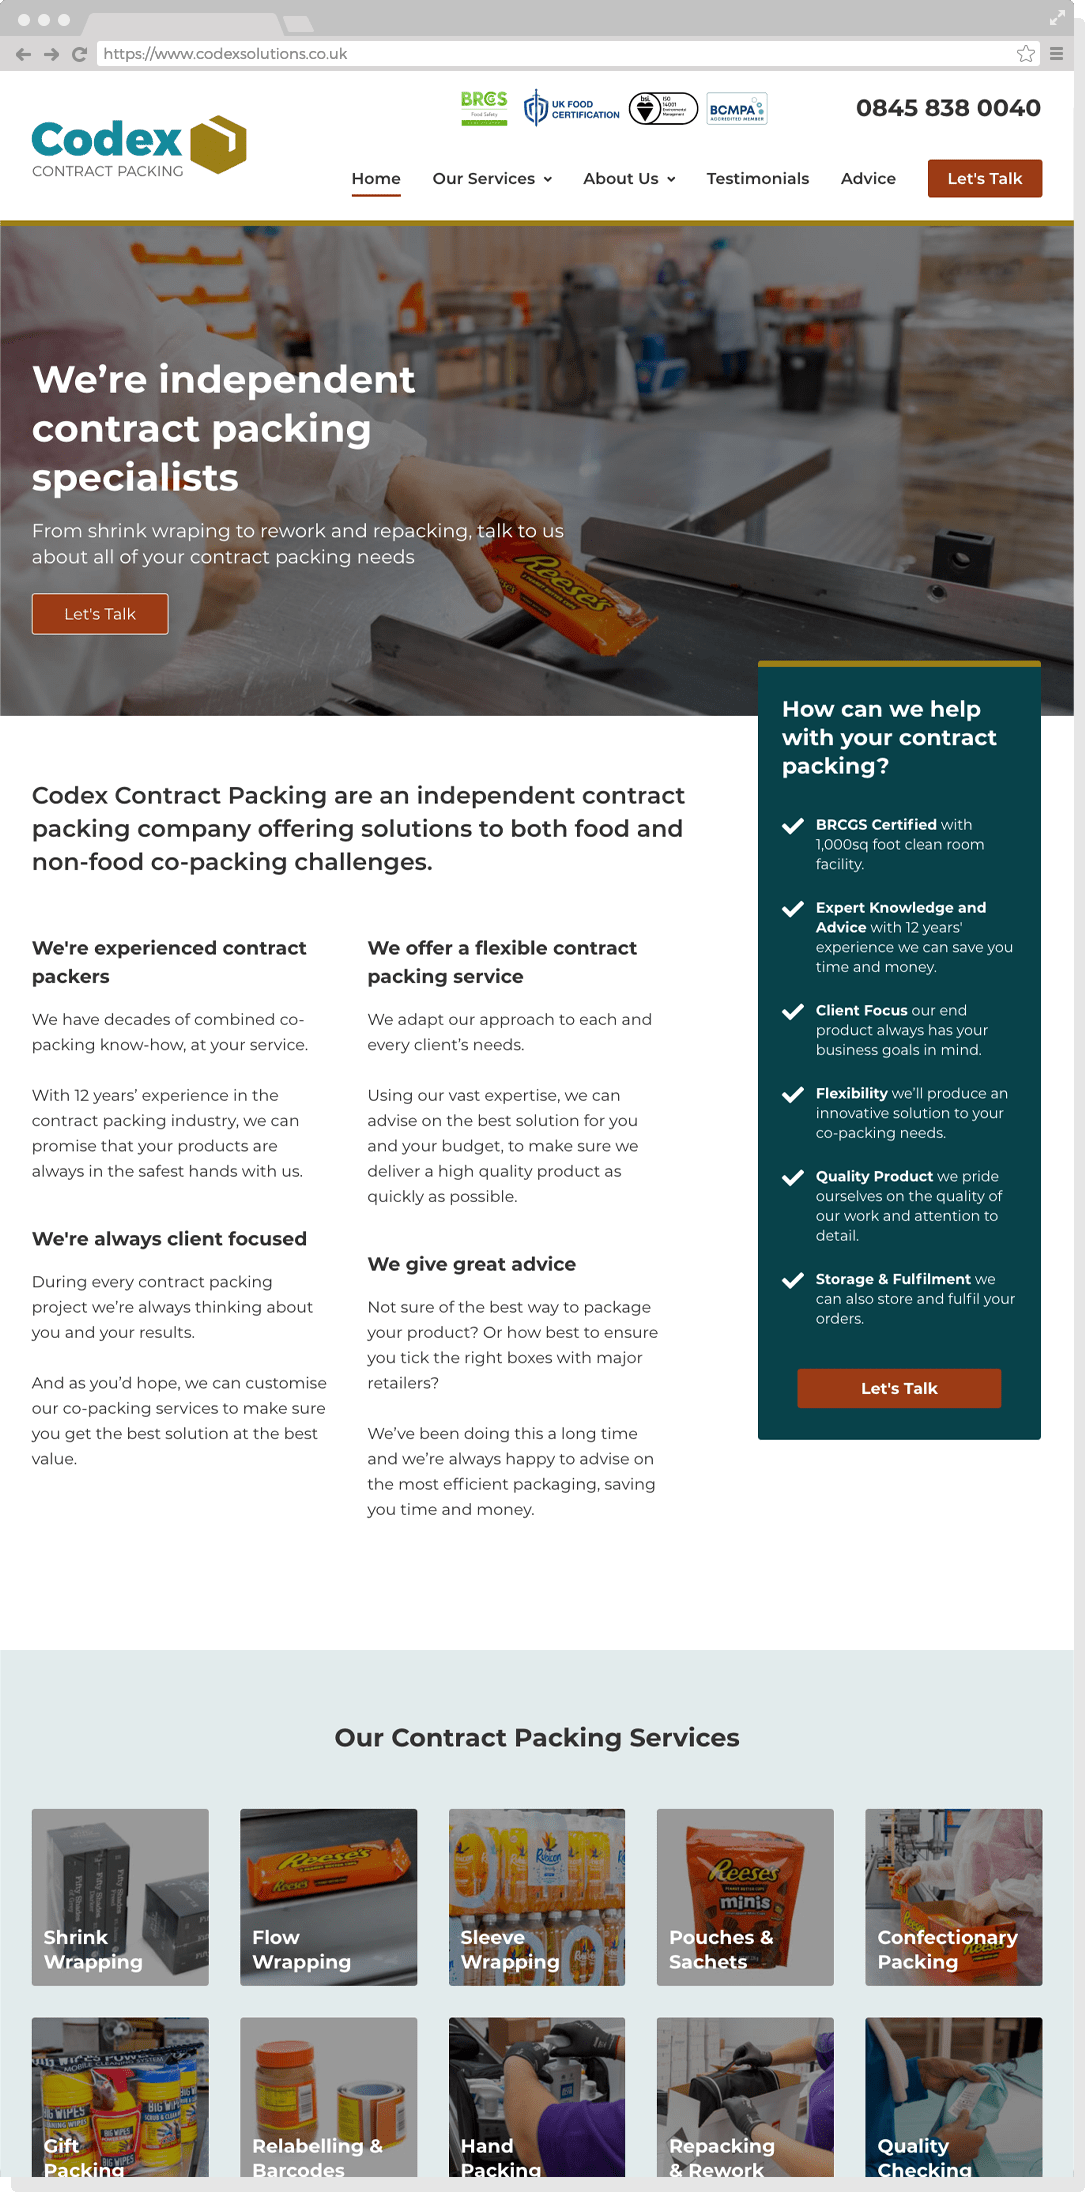 Website Redesign for Codex Contract Packing in Leighton Buzzard